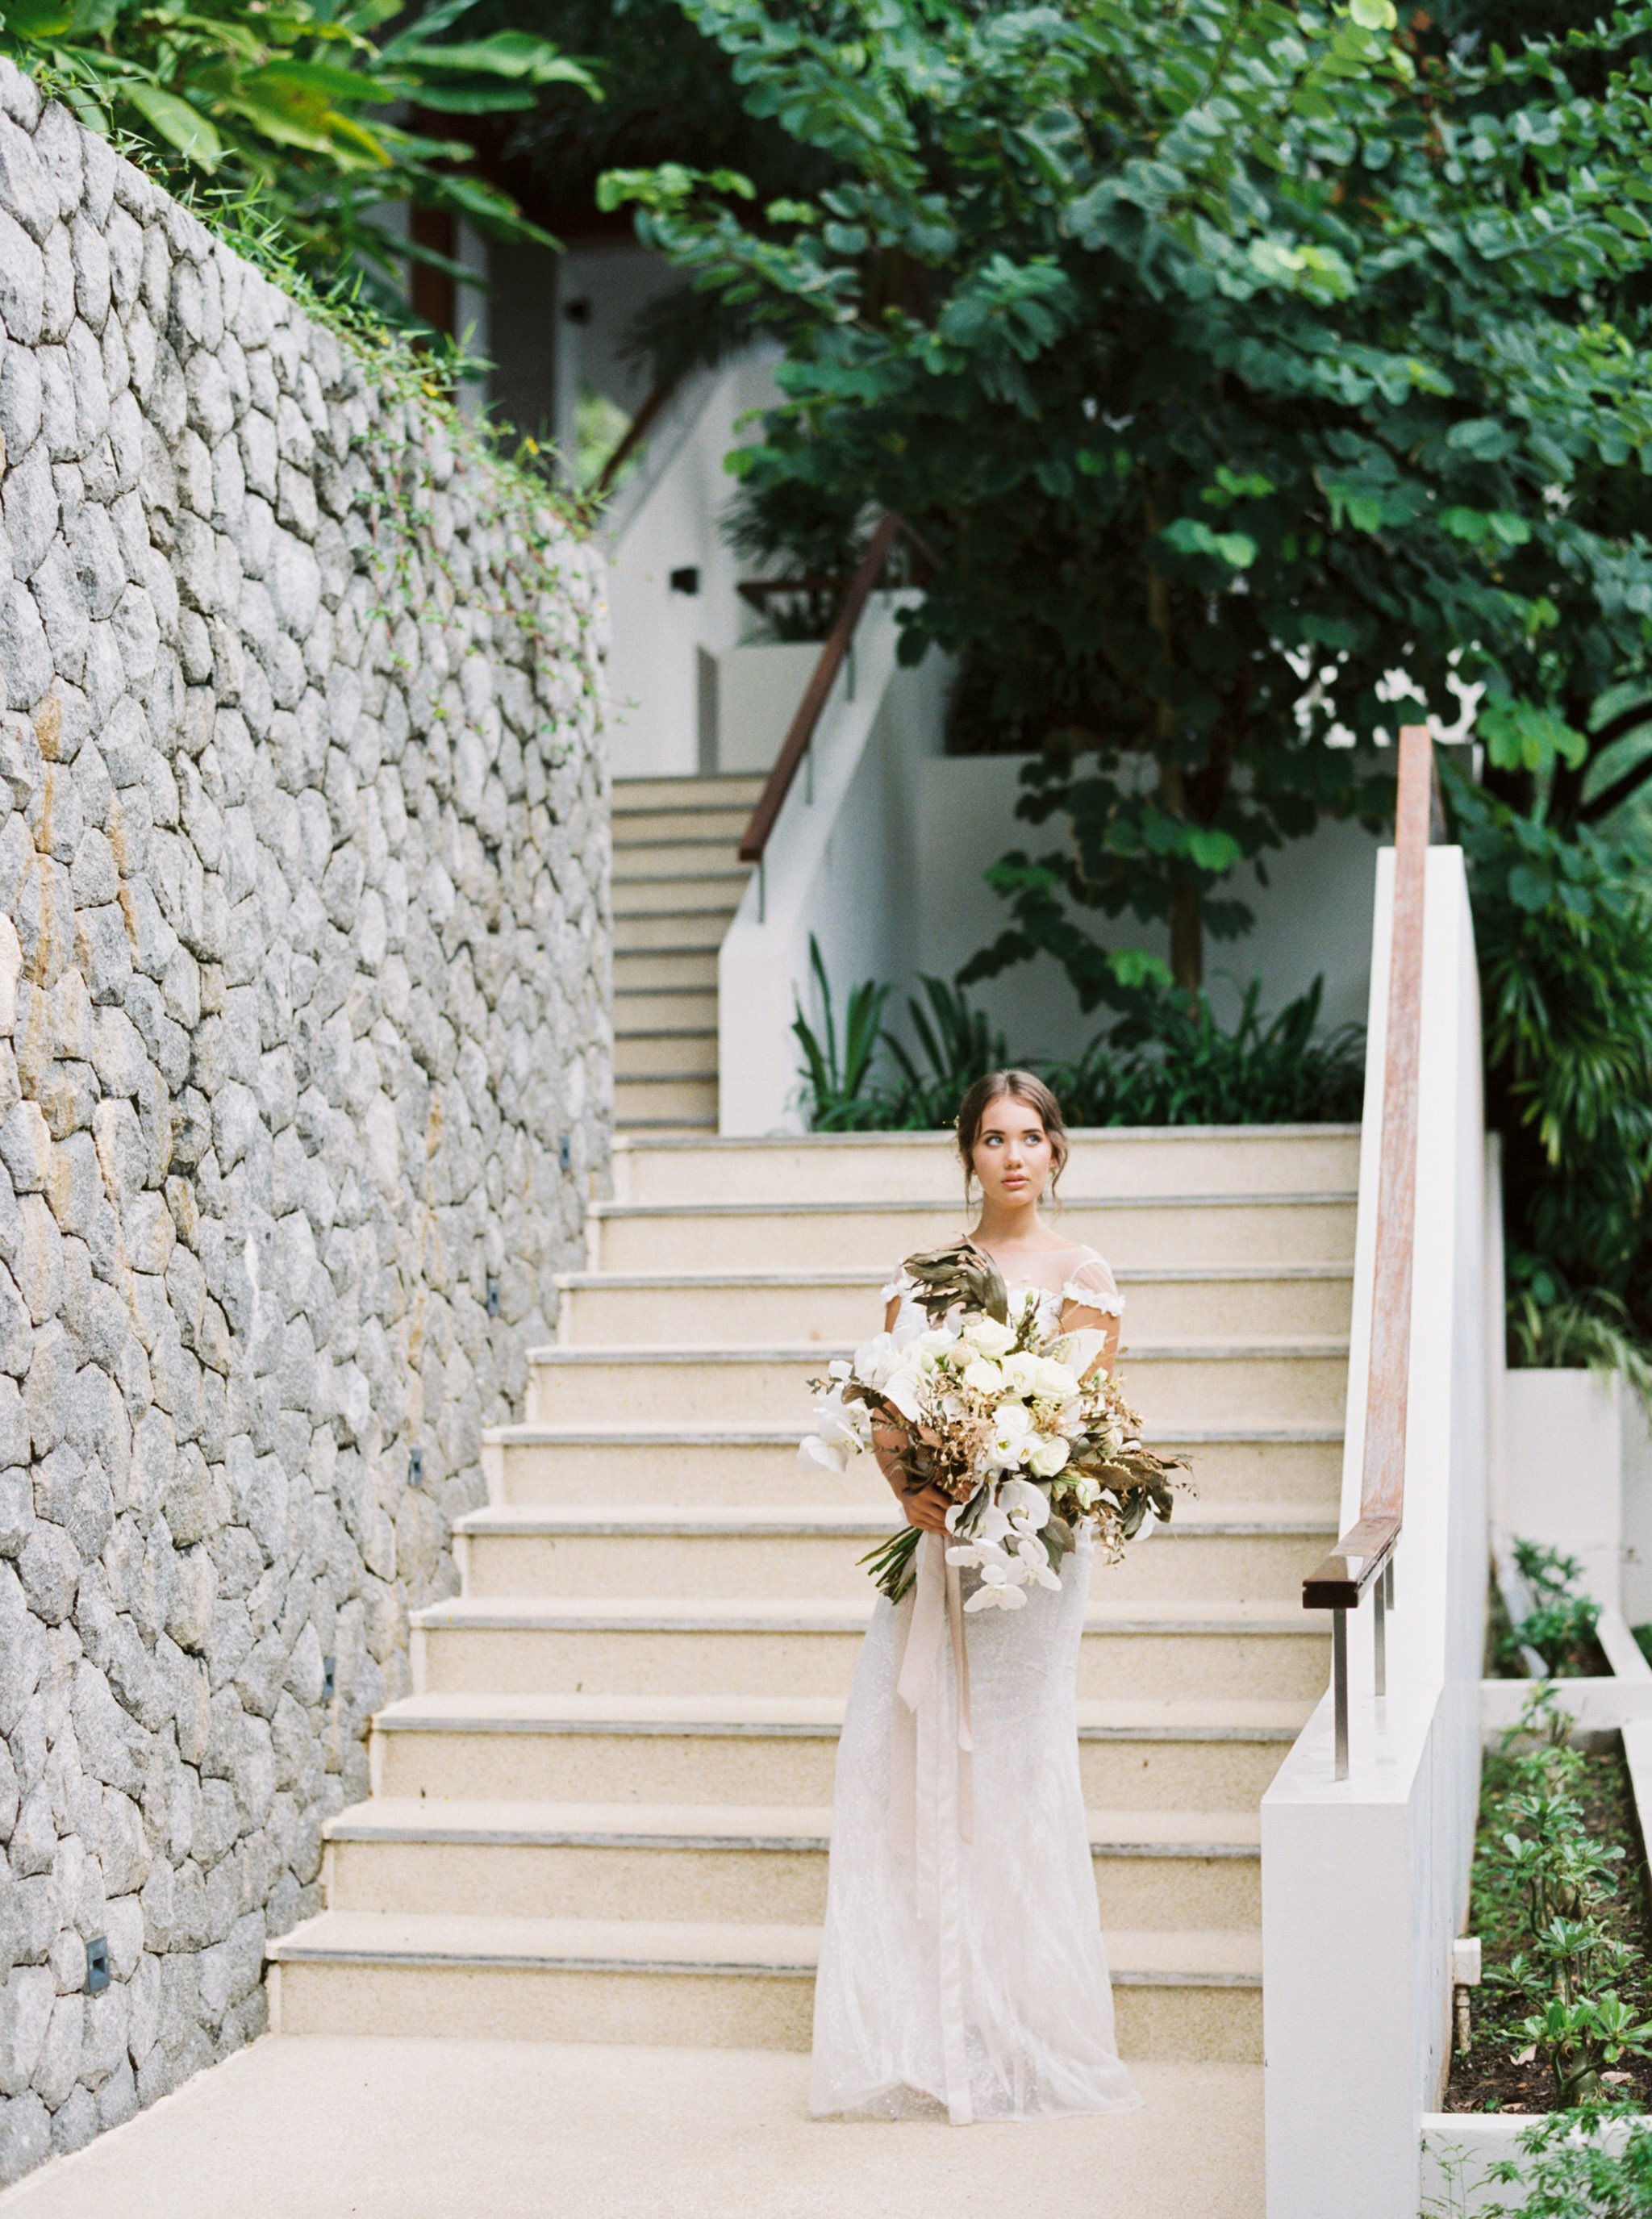 Destination Wedding Phuket Thailand Fine Art Film Photographer Sheri McMahon-00025-25.jpg